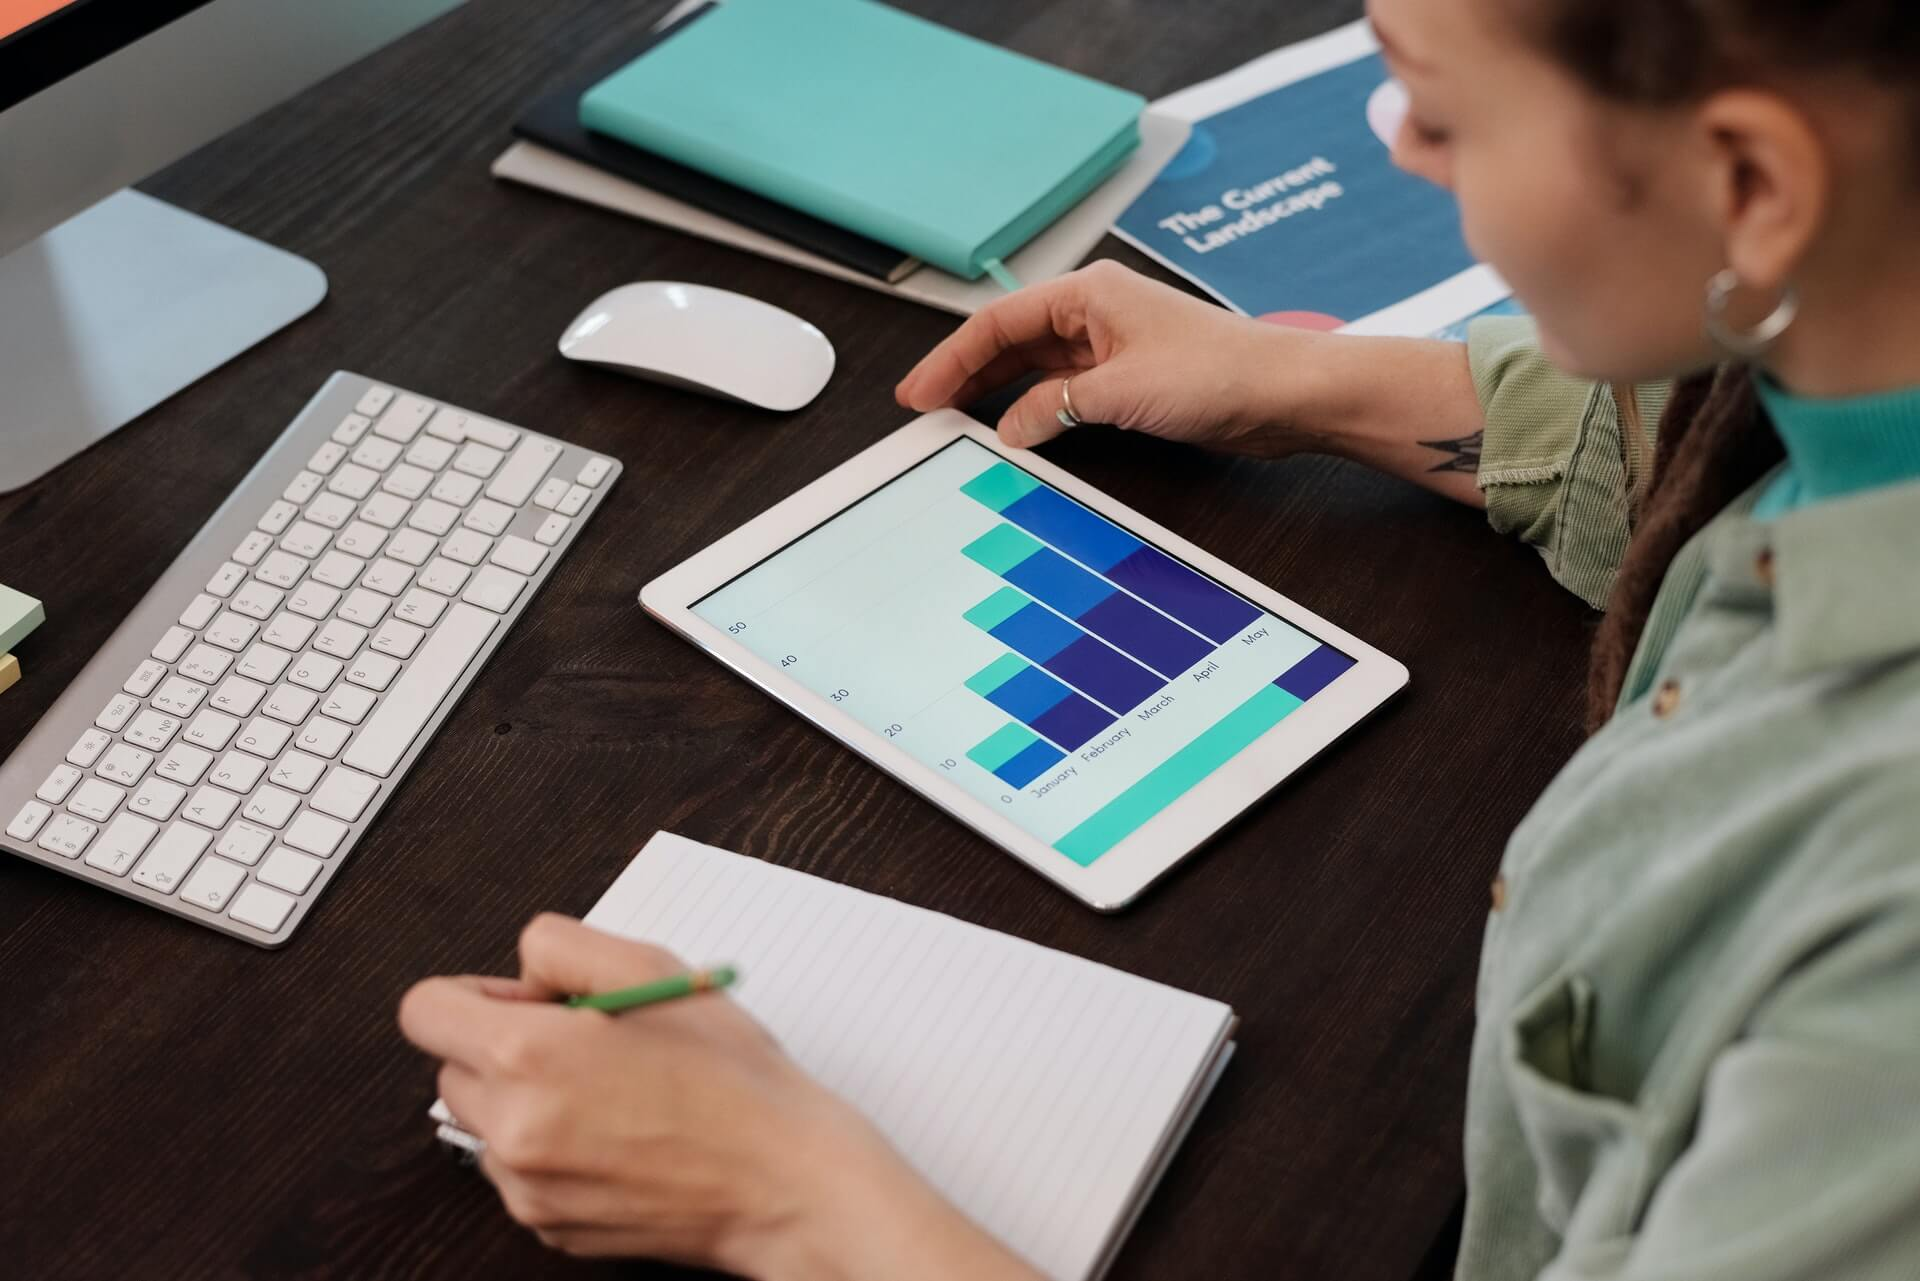 A female digital marketing professional analyzes paid advertising data and charts for future advertising strategies.